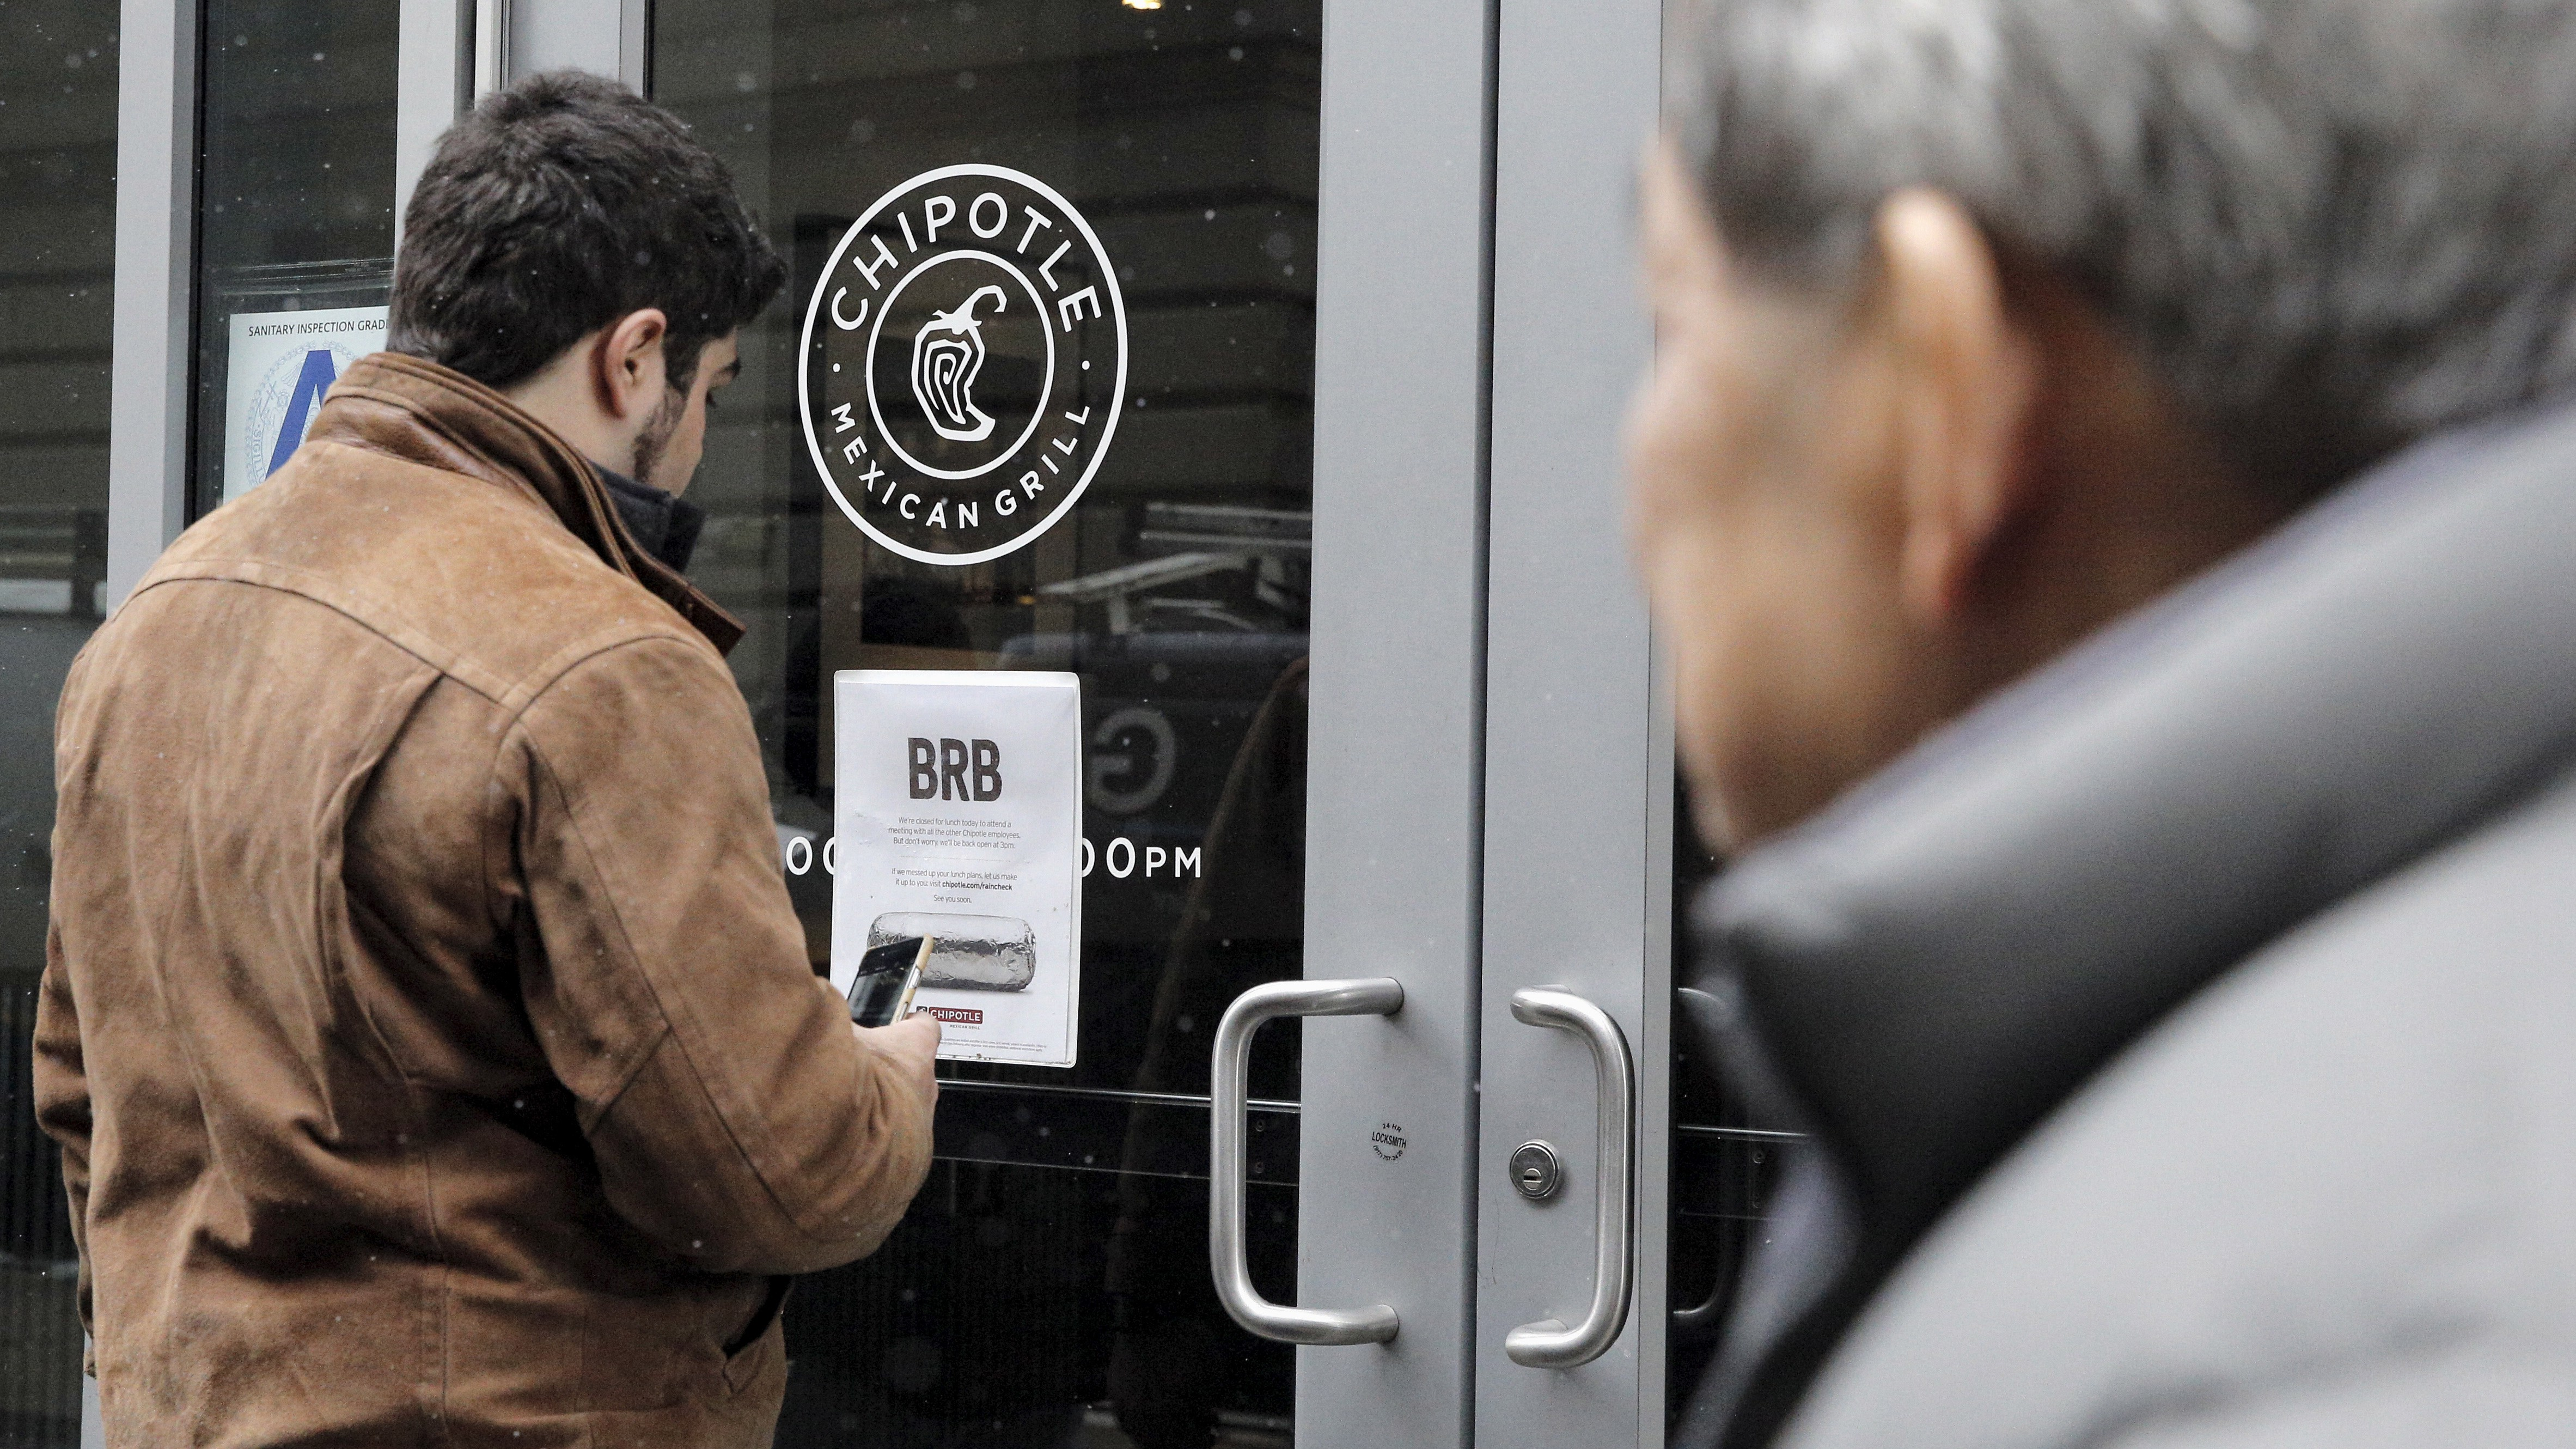 A customer reads a sign posted on the door of a Chipotle Mexican Grill in New York February 8, 2016.